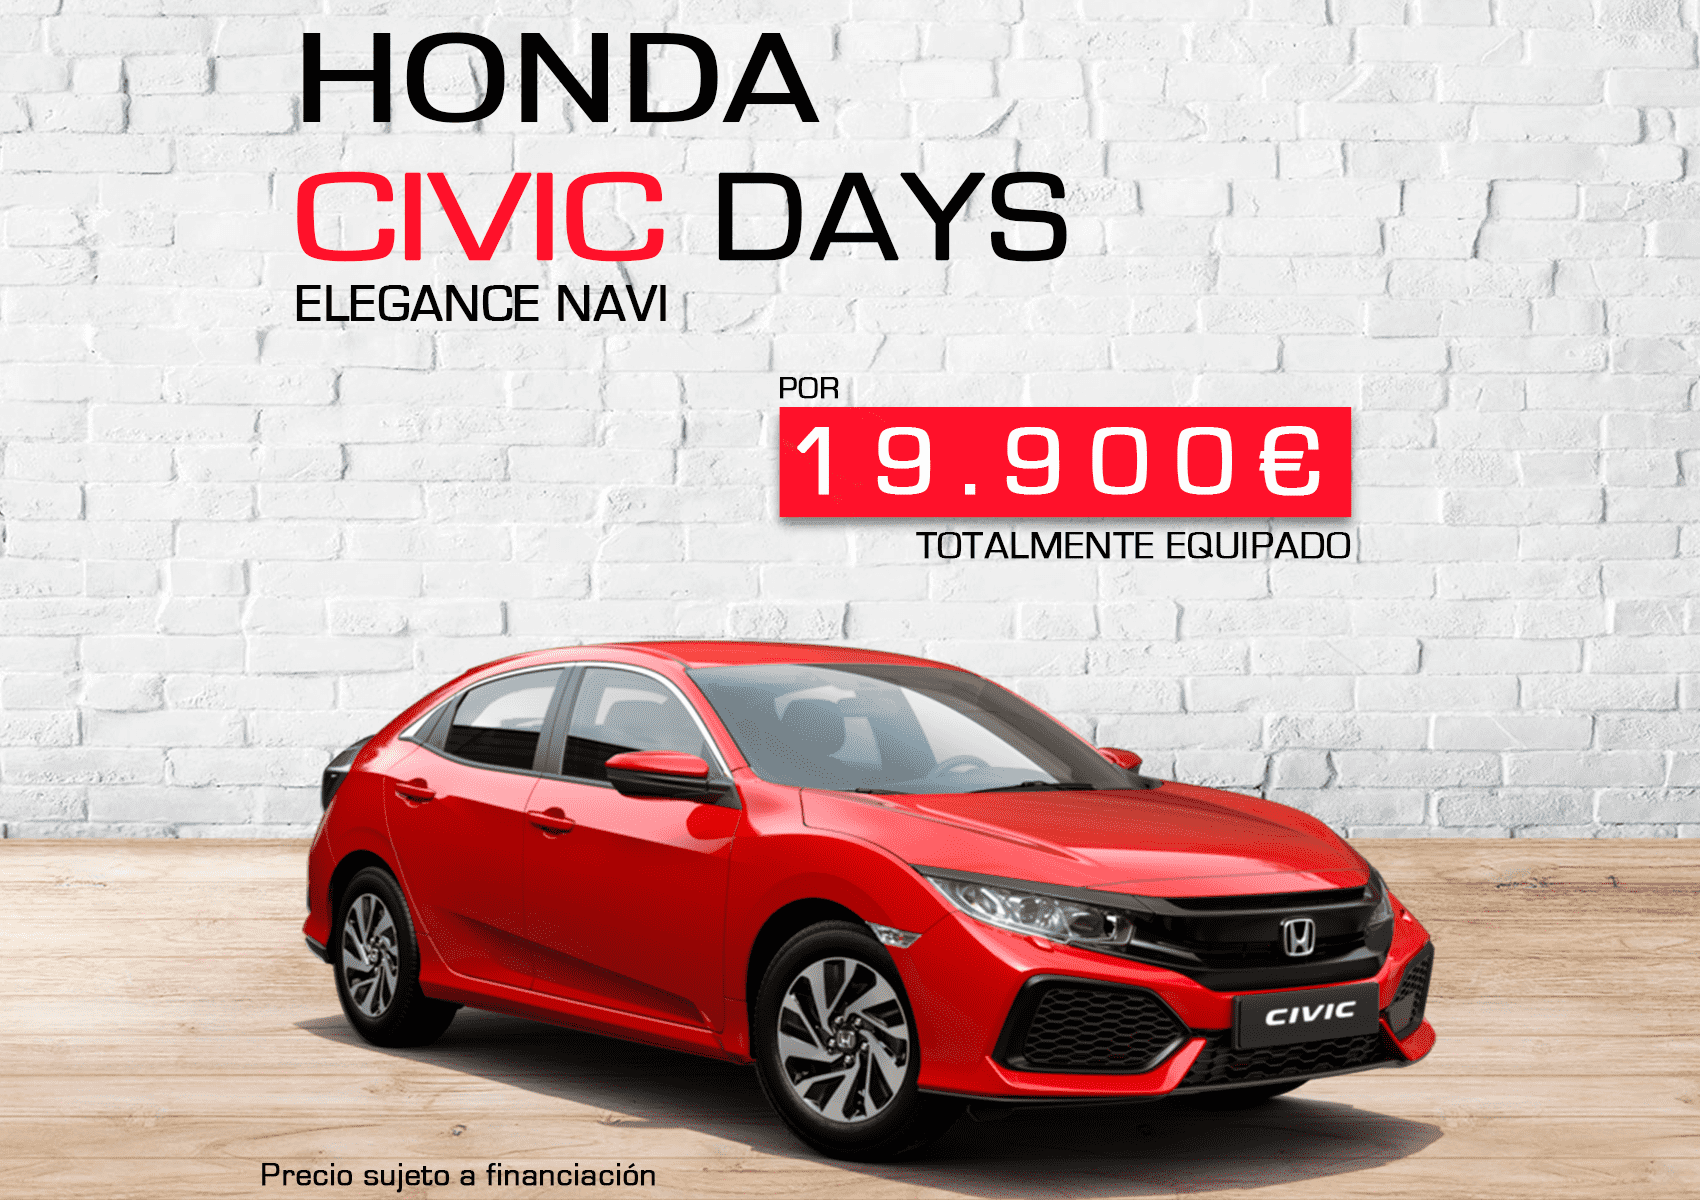 Honda Civic Days - ¡Sólo por 19.900€!